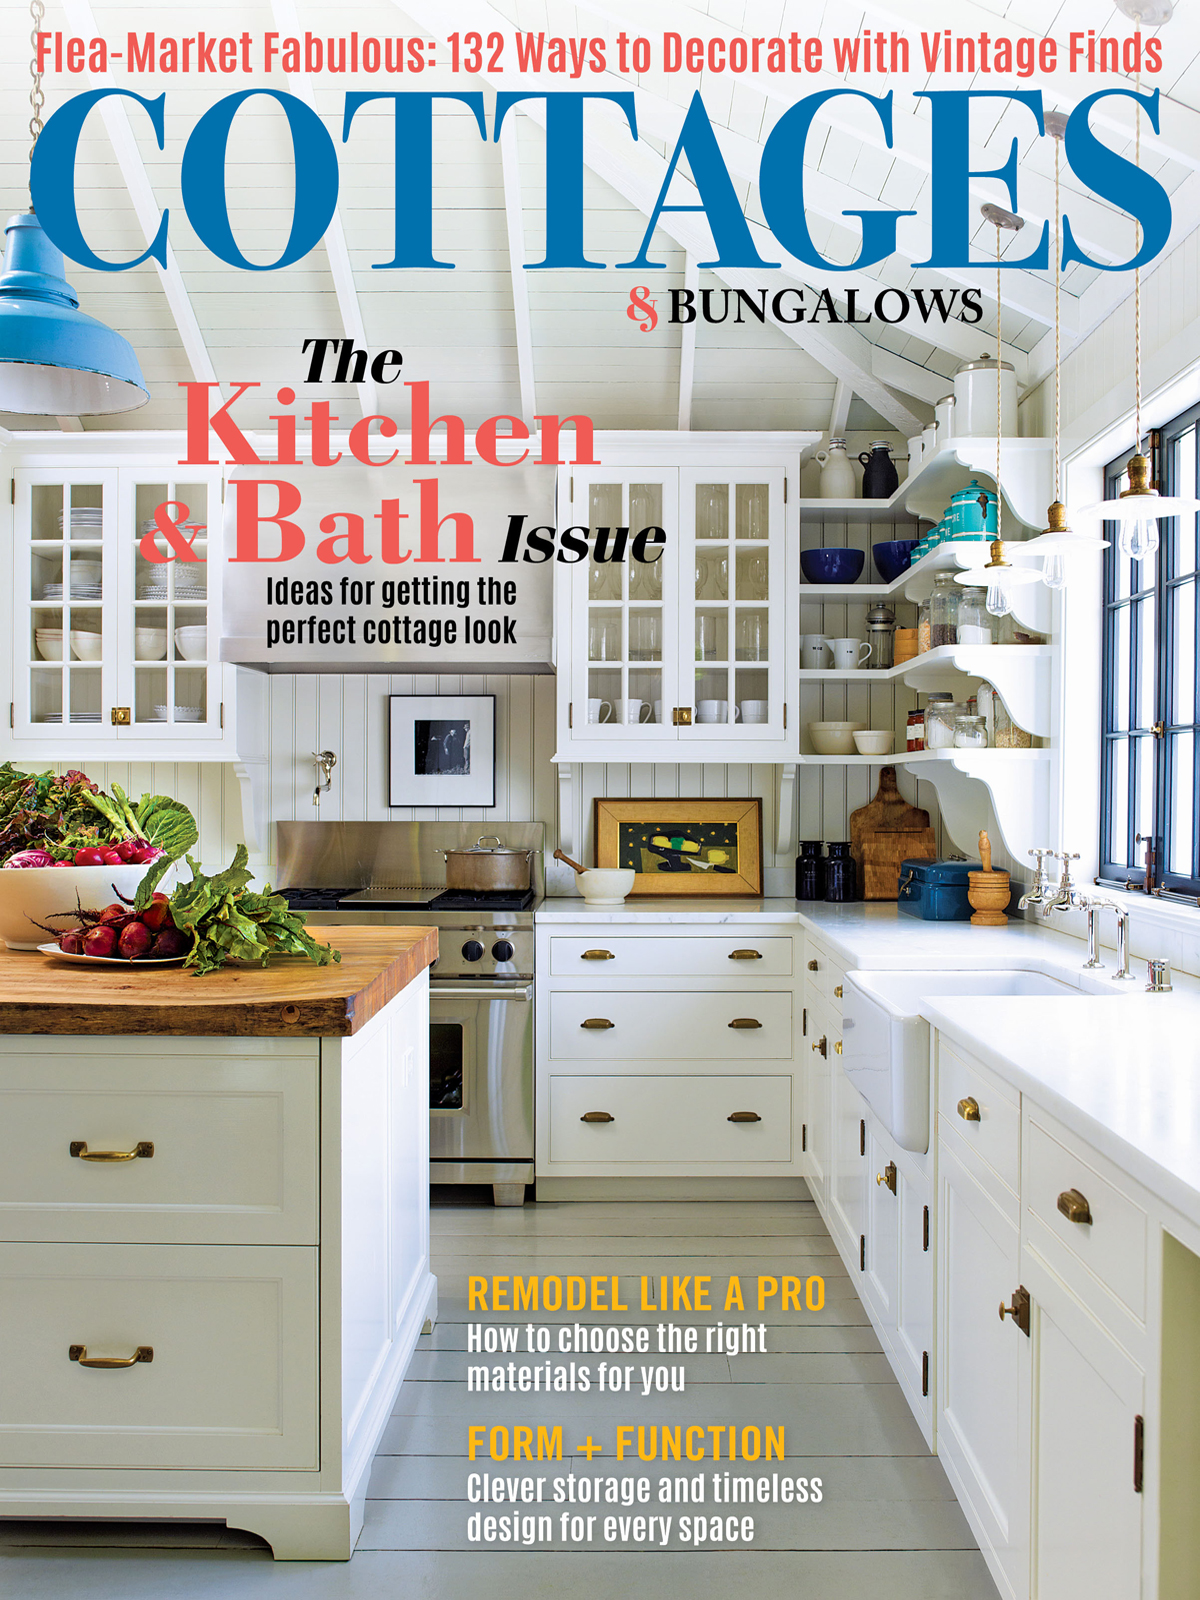 Blackband_Design_Cottages_Bungalows_Cover